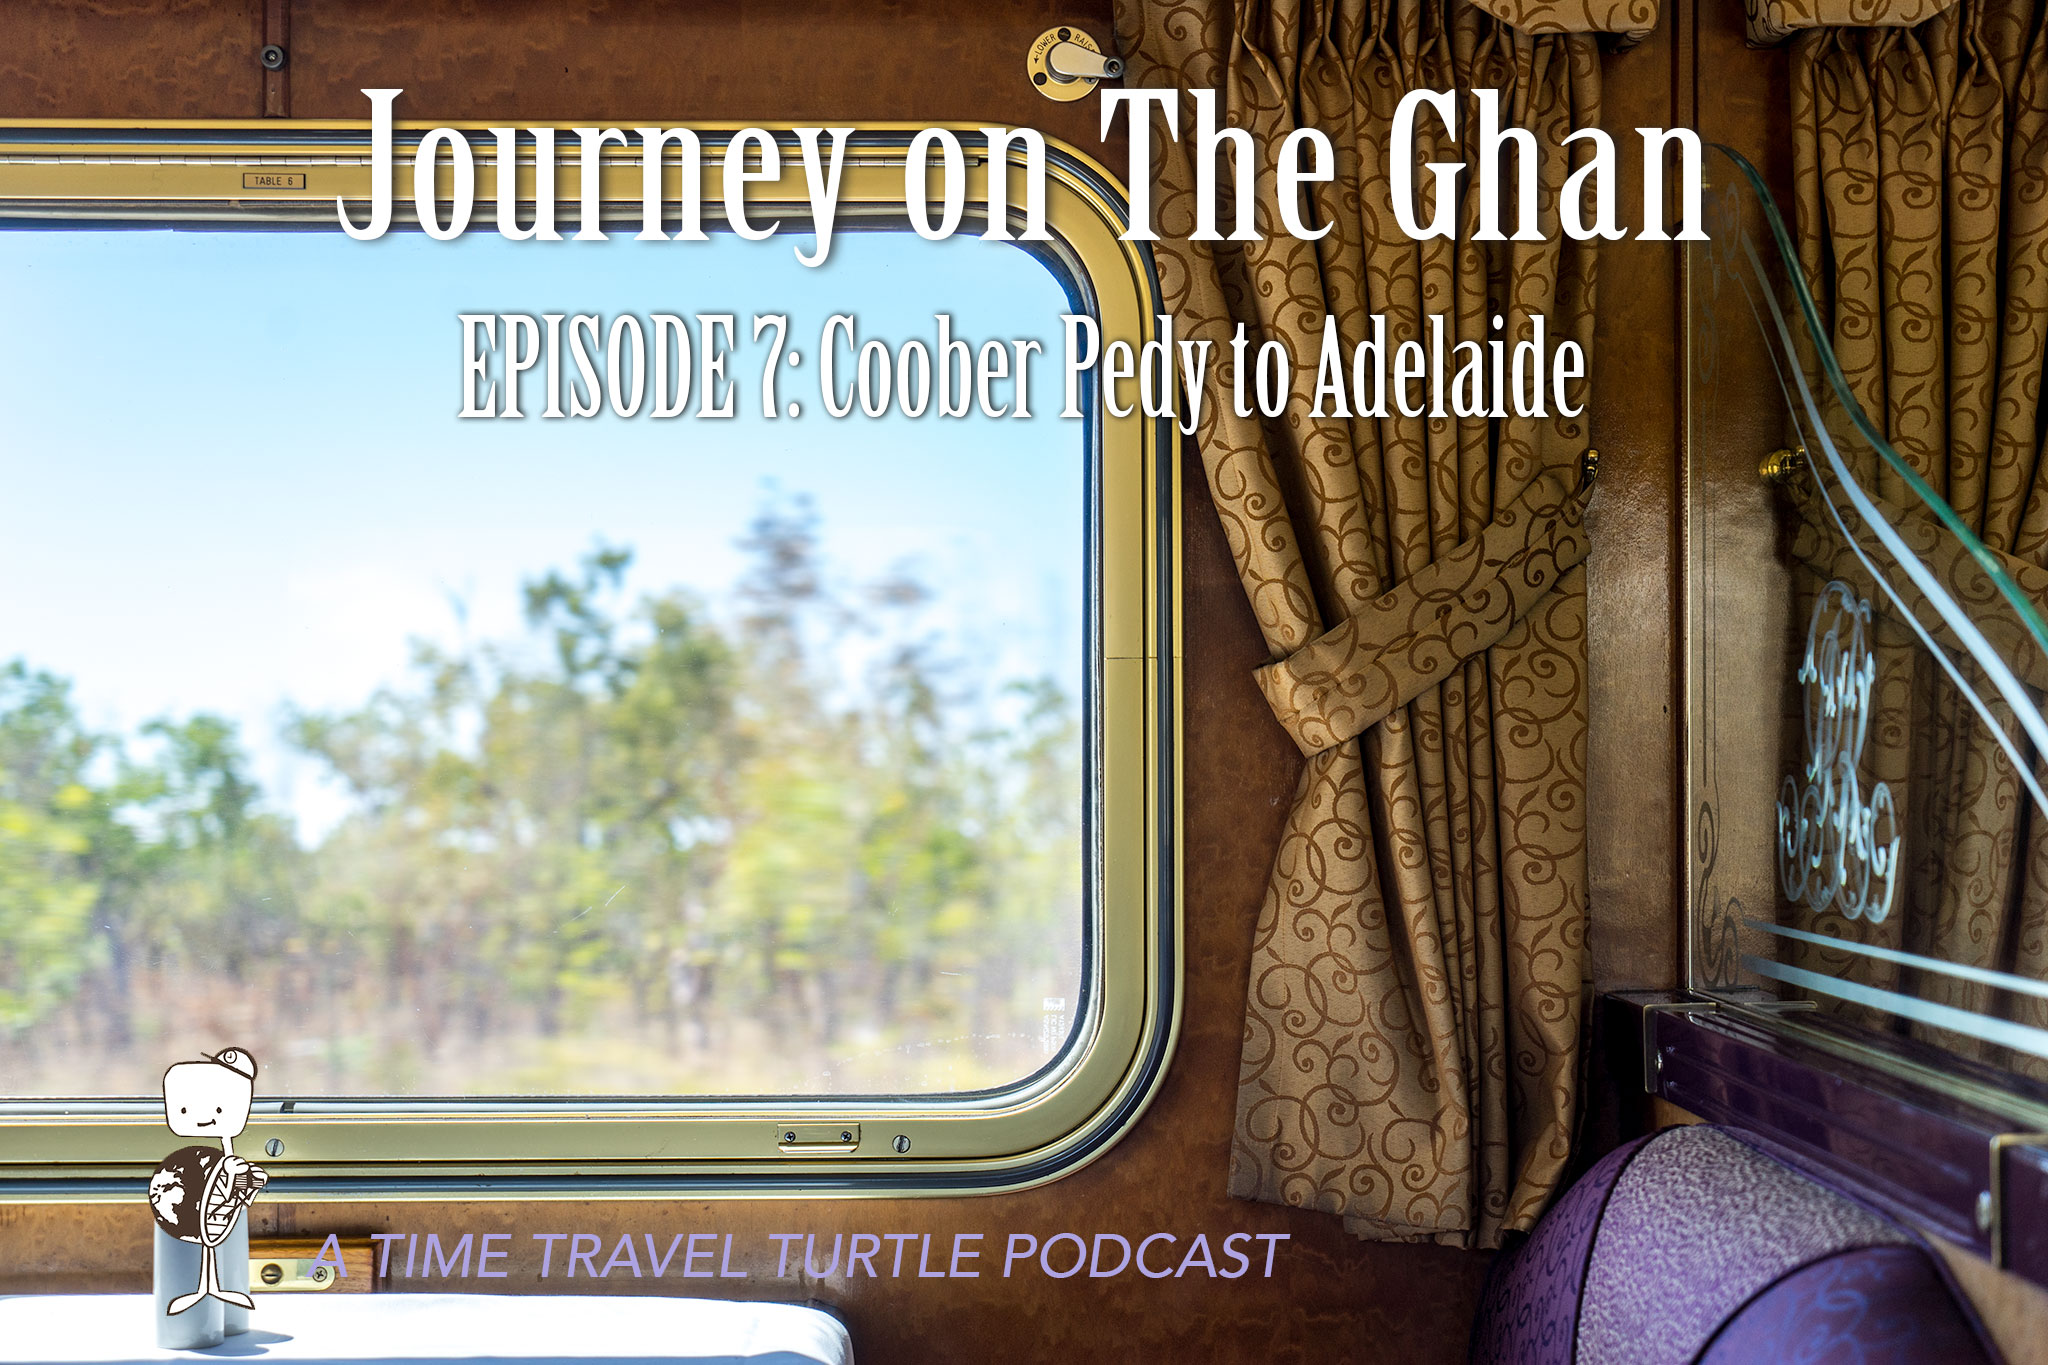 Journey on the Ghan: Episode 7